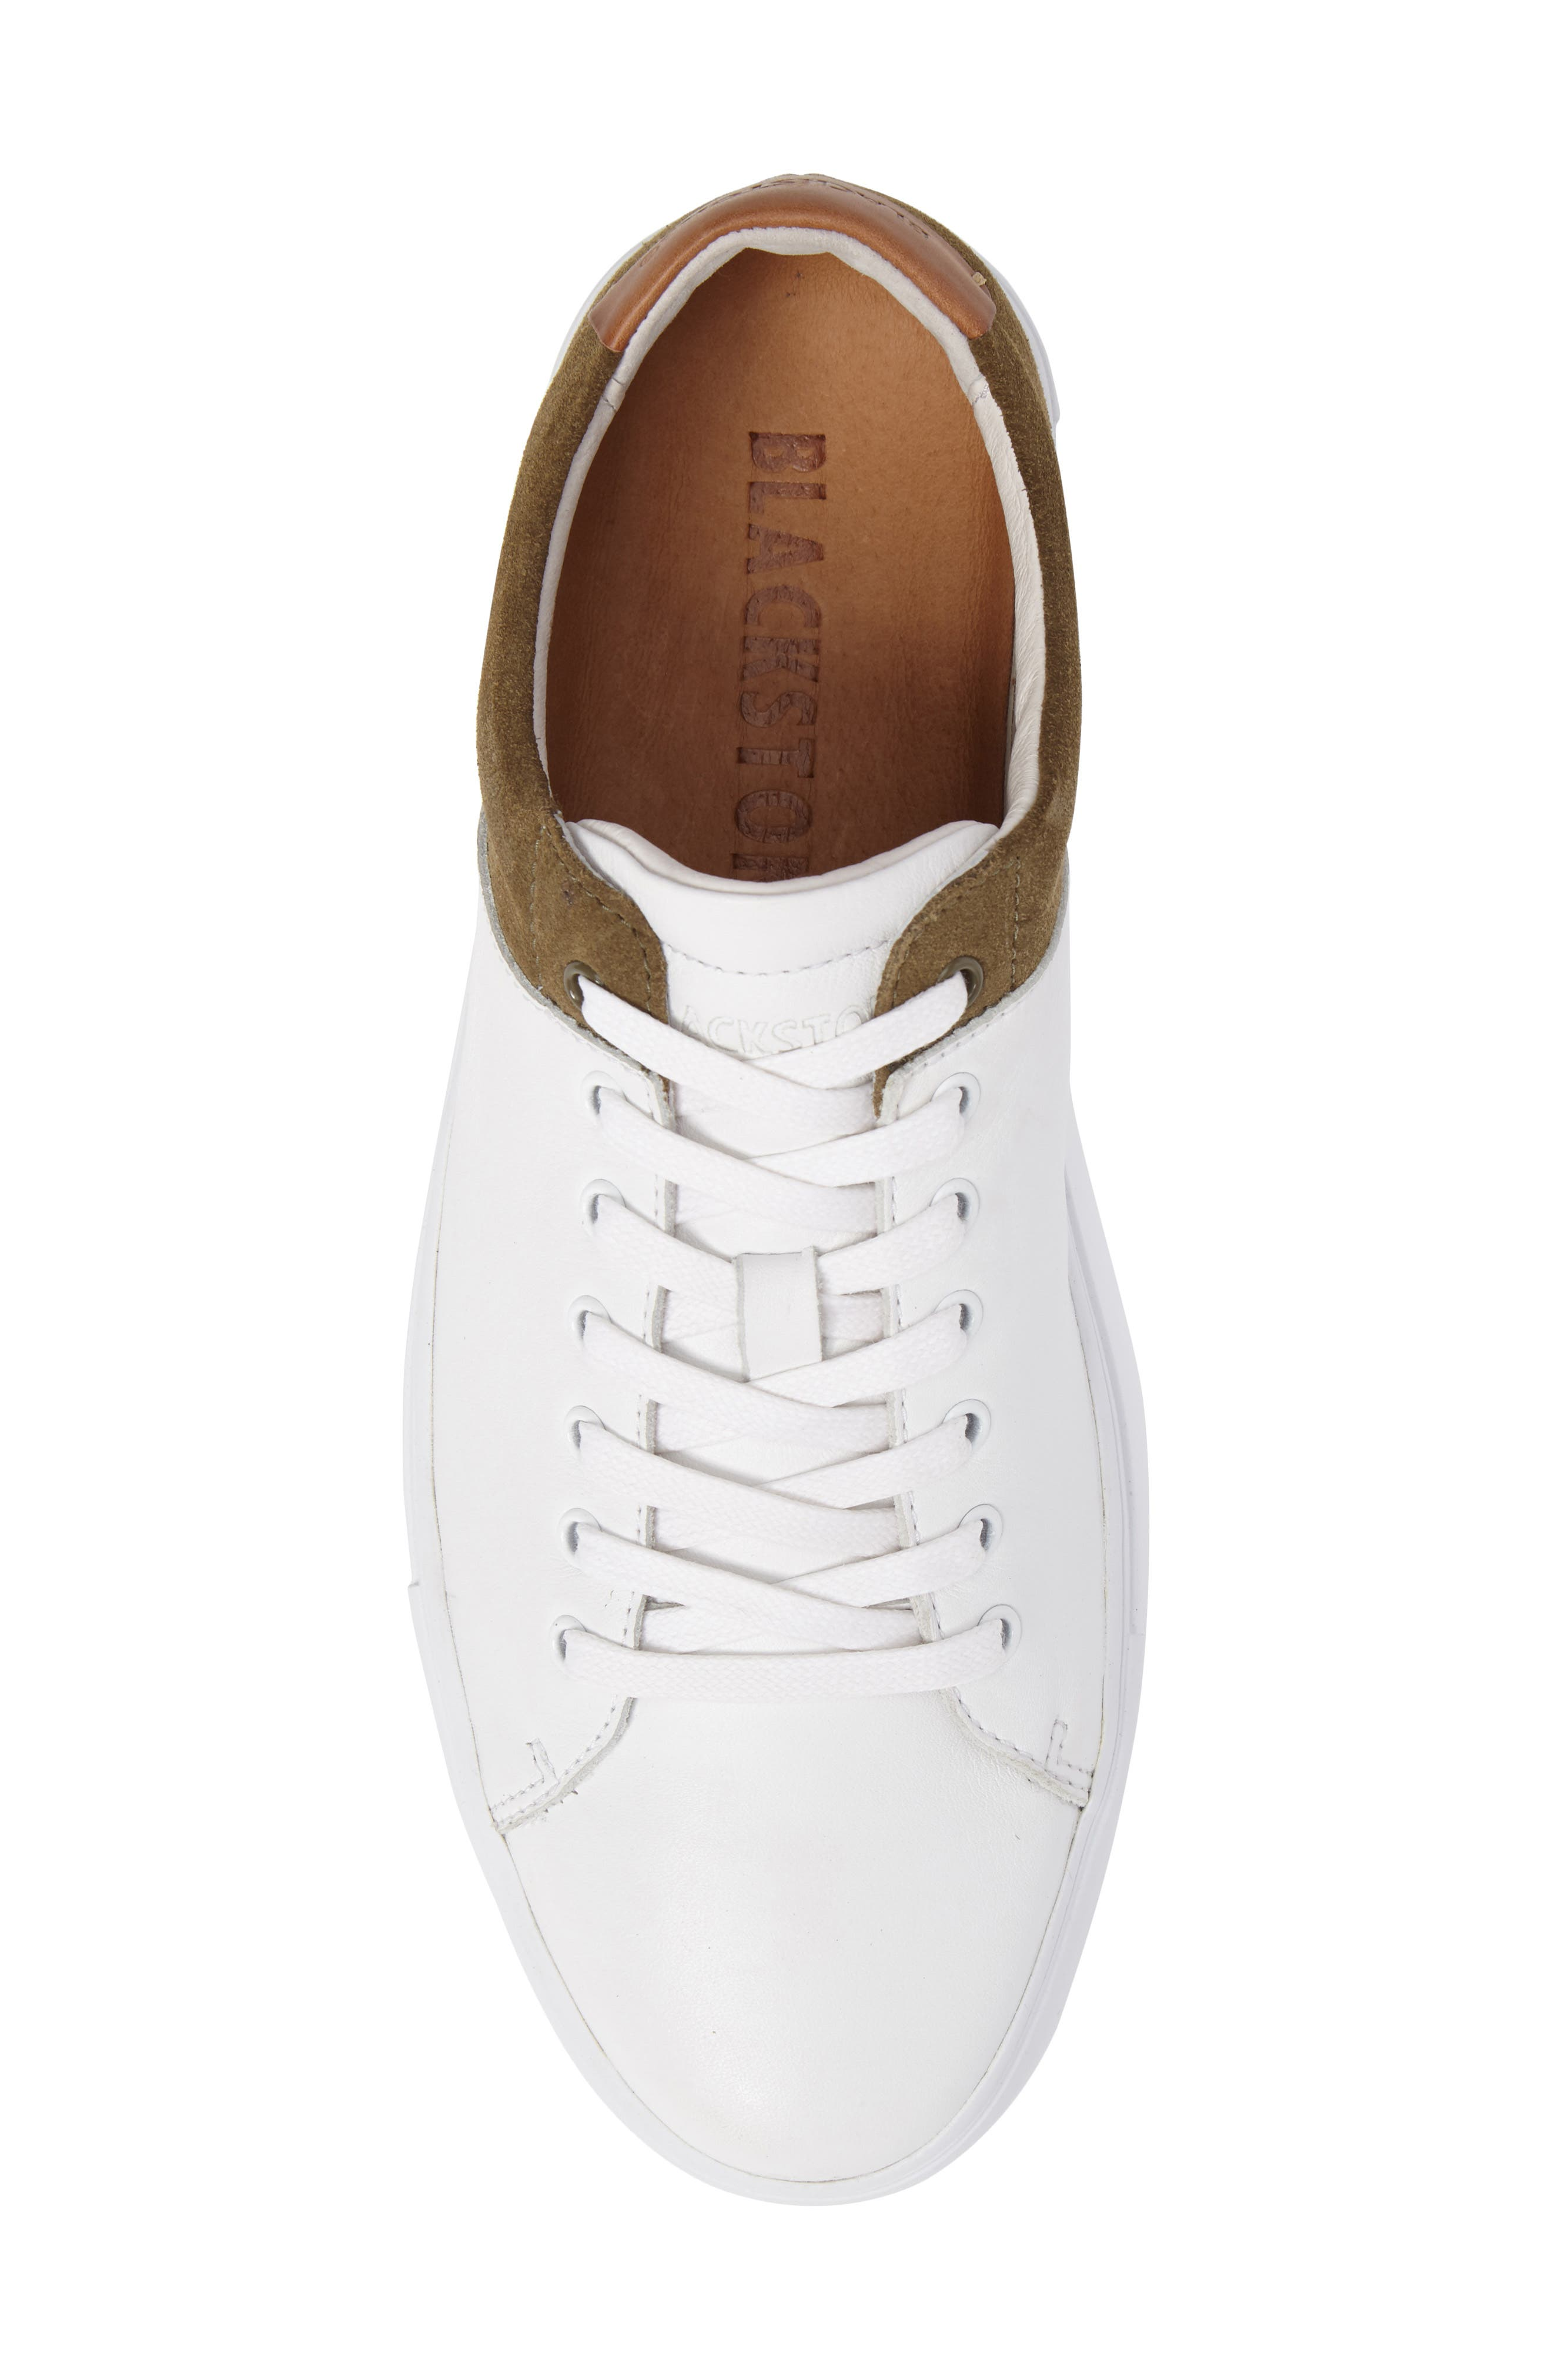 NM03 Two-Tone Sneaker,                             Alternate thumbnail 5, color,                             White/ Olive Leather